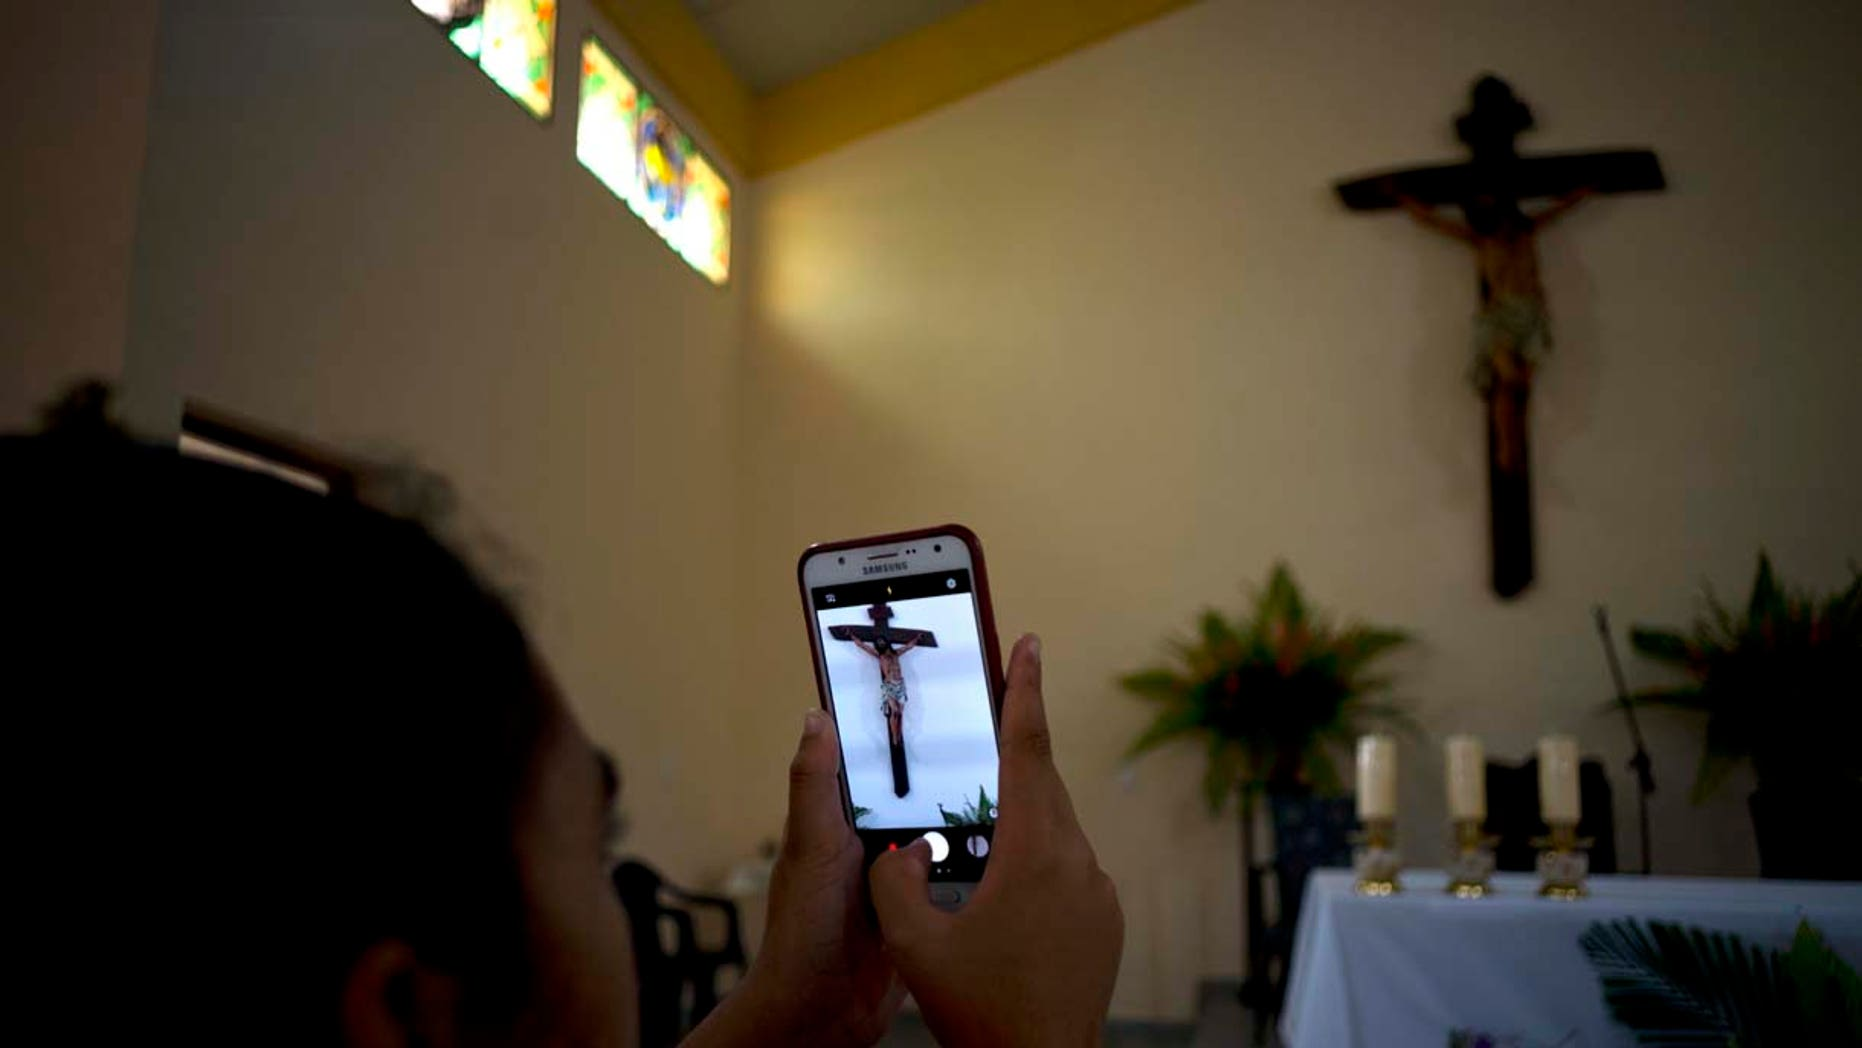 A parishioner makes a photo of the crucifix above the altar at the newly consecrated Sagrado Corazon de Jesus, or Sacred Heart, Catholic church, in Sandino, Cuba, Saturday, Jan. 26, 2019. (AP Photo/Ramon Espinosa)